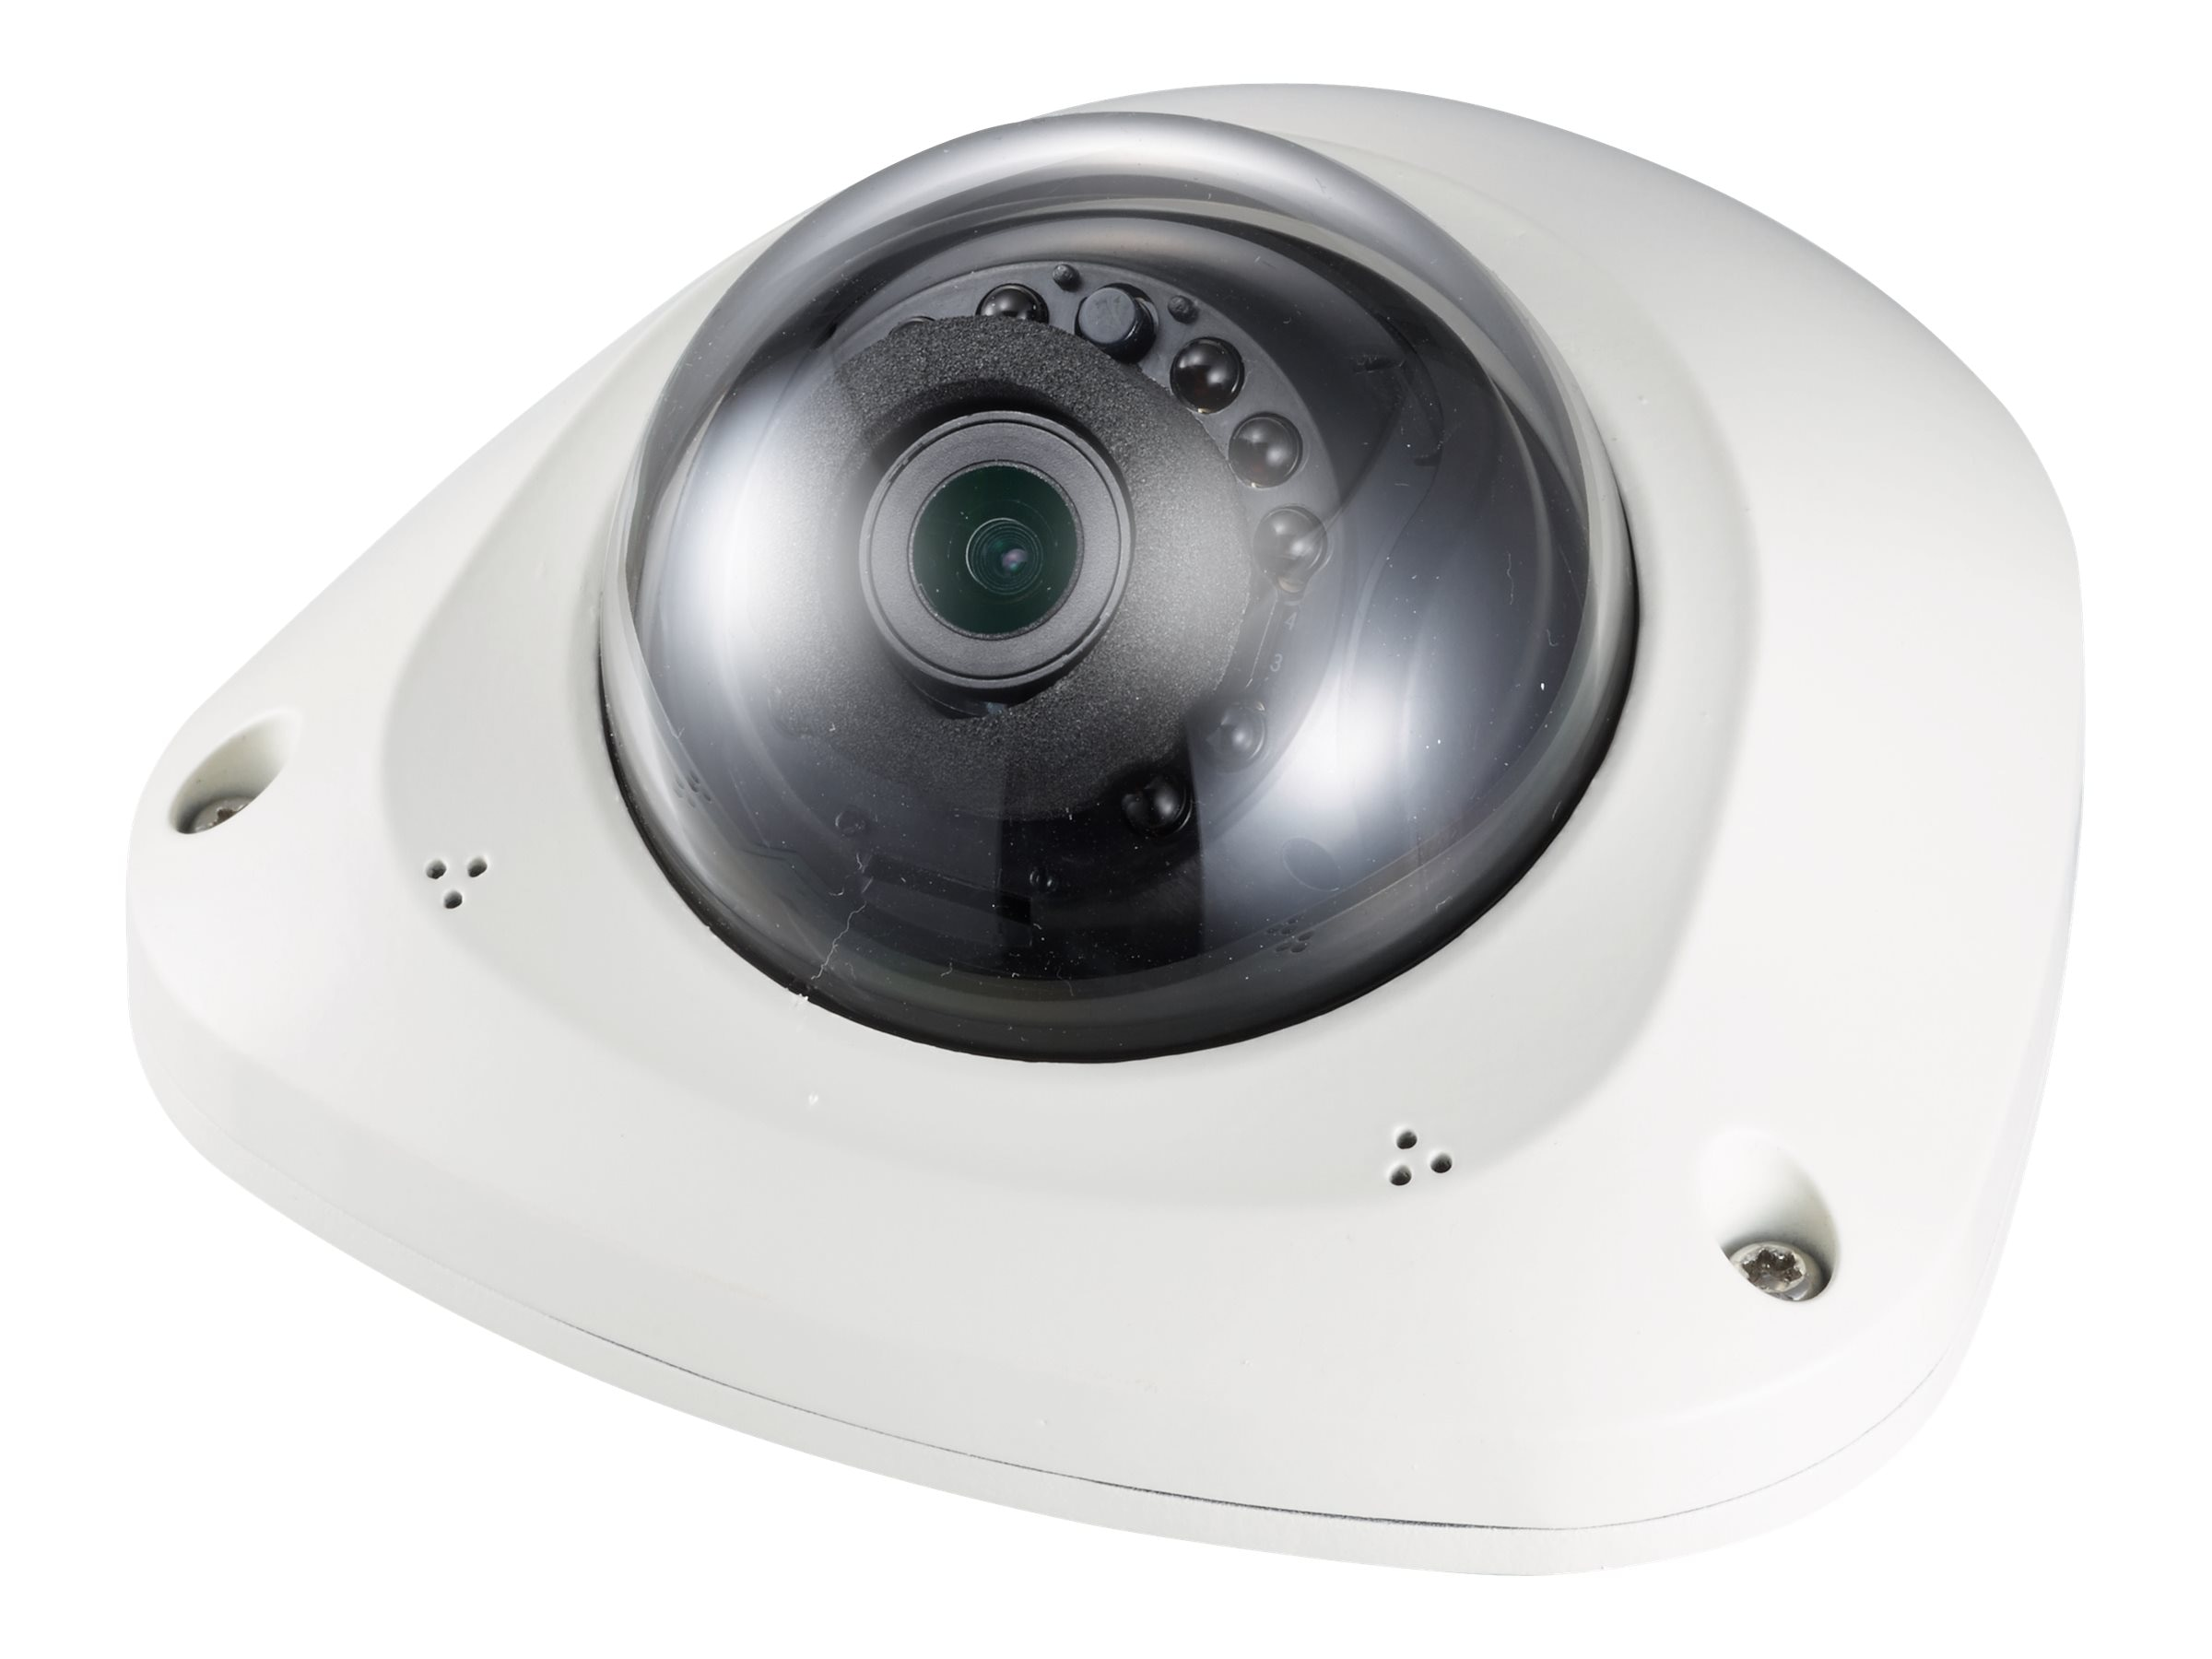 Samsung 2MP Full HD Vandal-Resistant Network IR Flat Camera